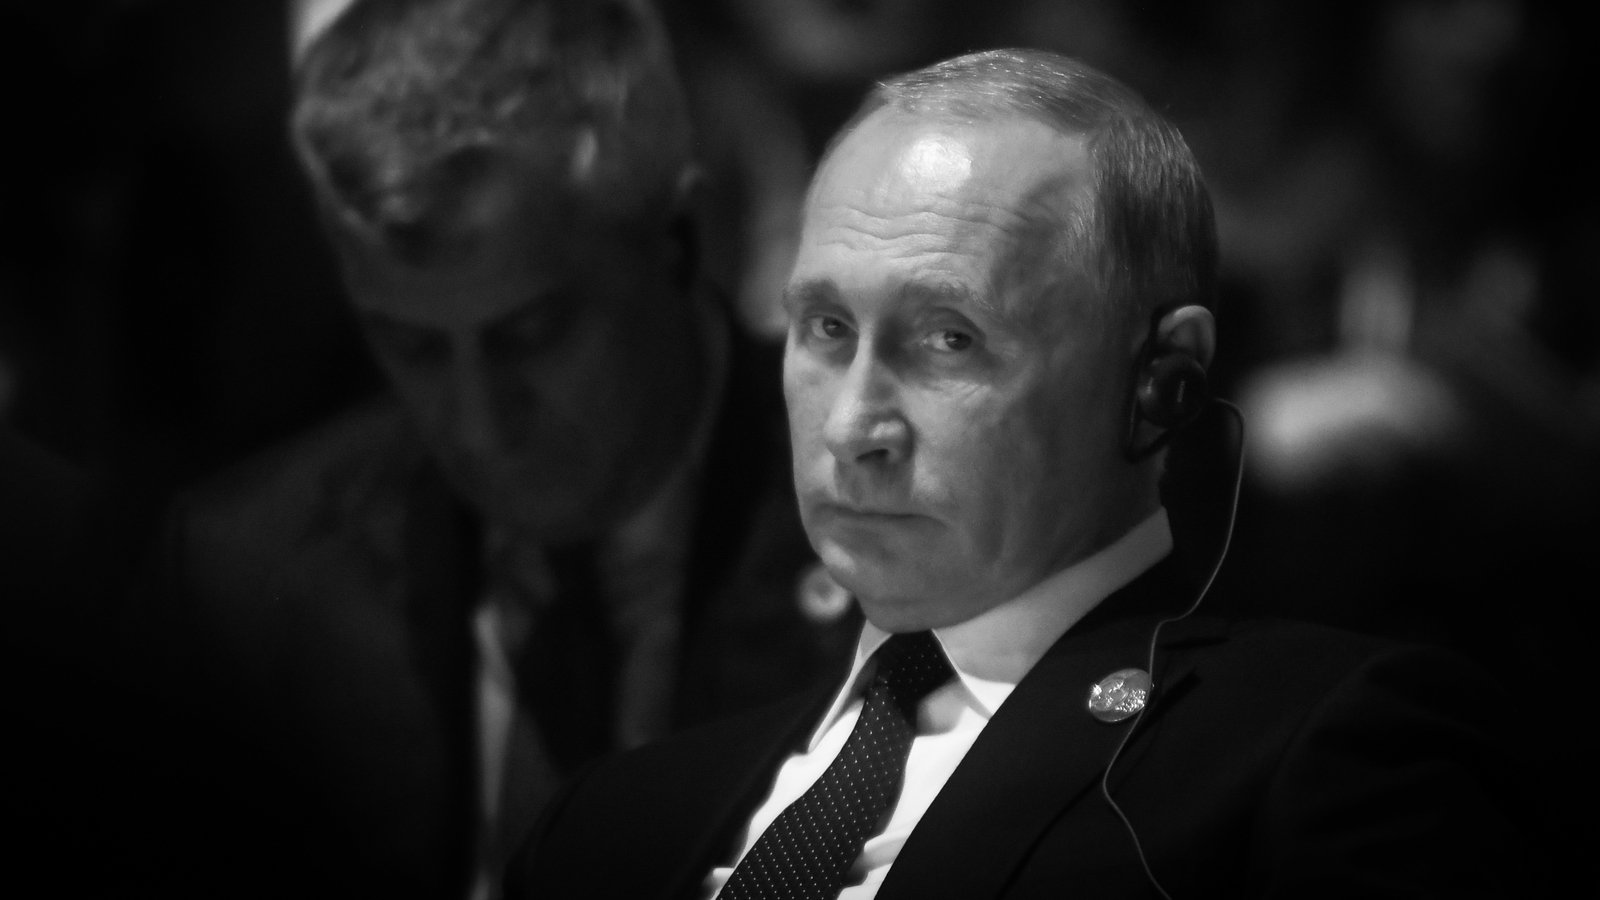 Putin's presidency under the microscope as Russia votes